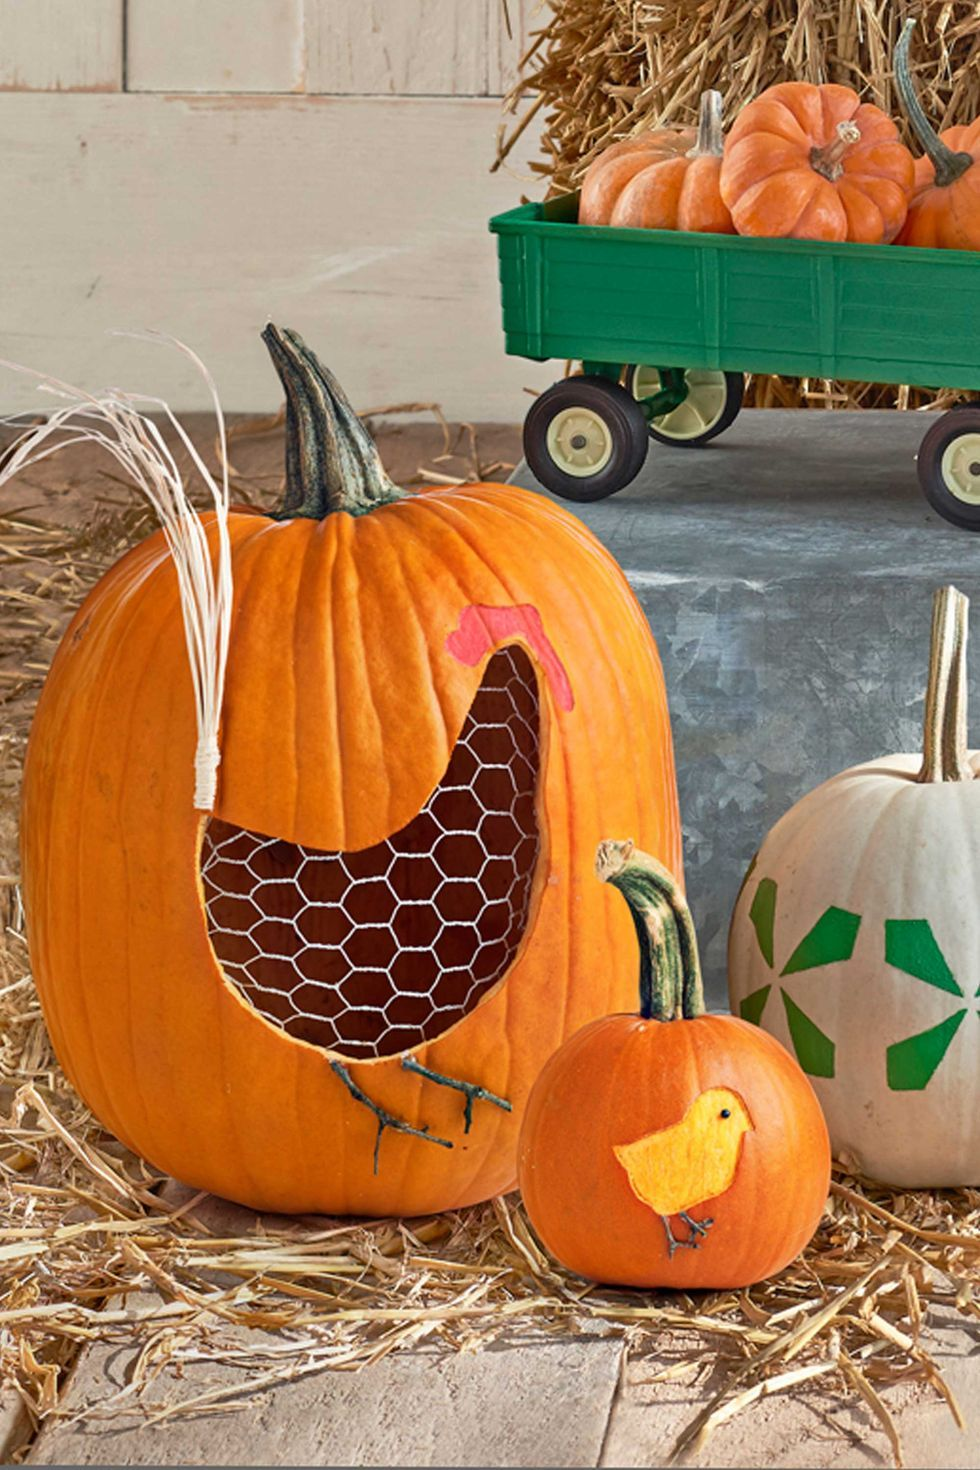 50 Easy Pumpkin Carving Ideas For Halloween 2021 Cool Pumpkin Carving Designs And Pictures